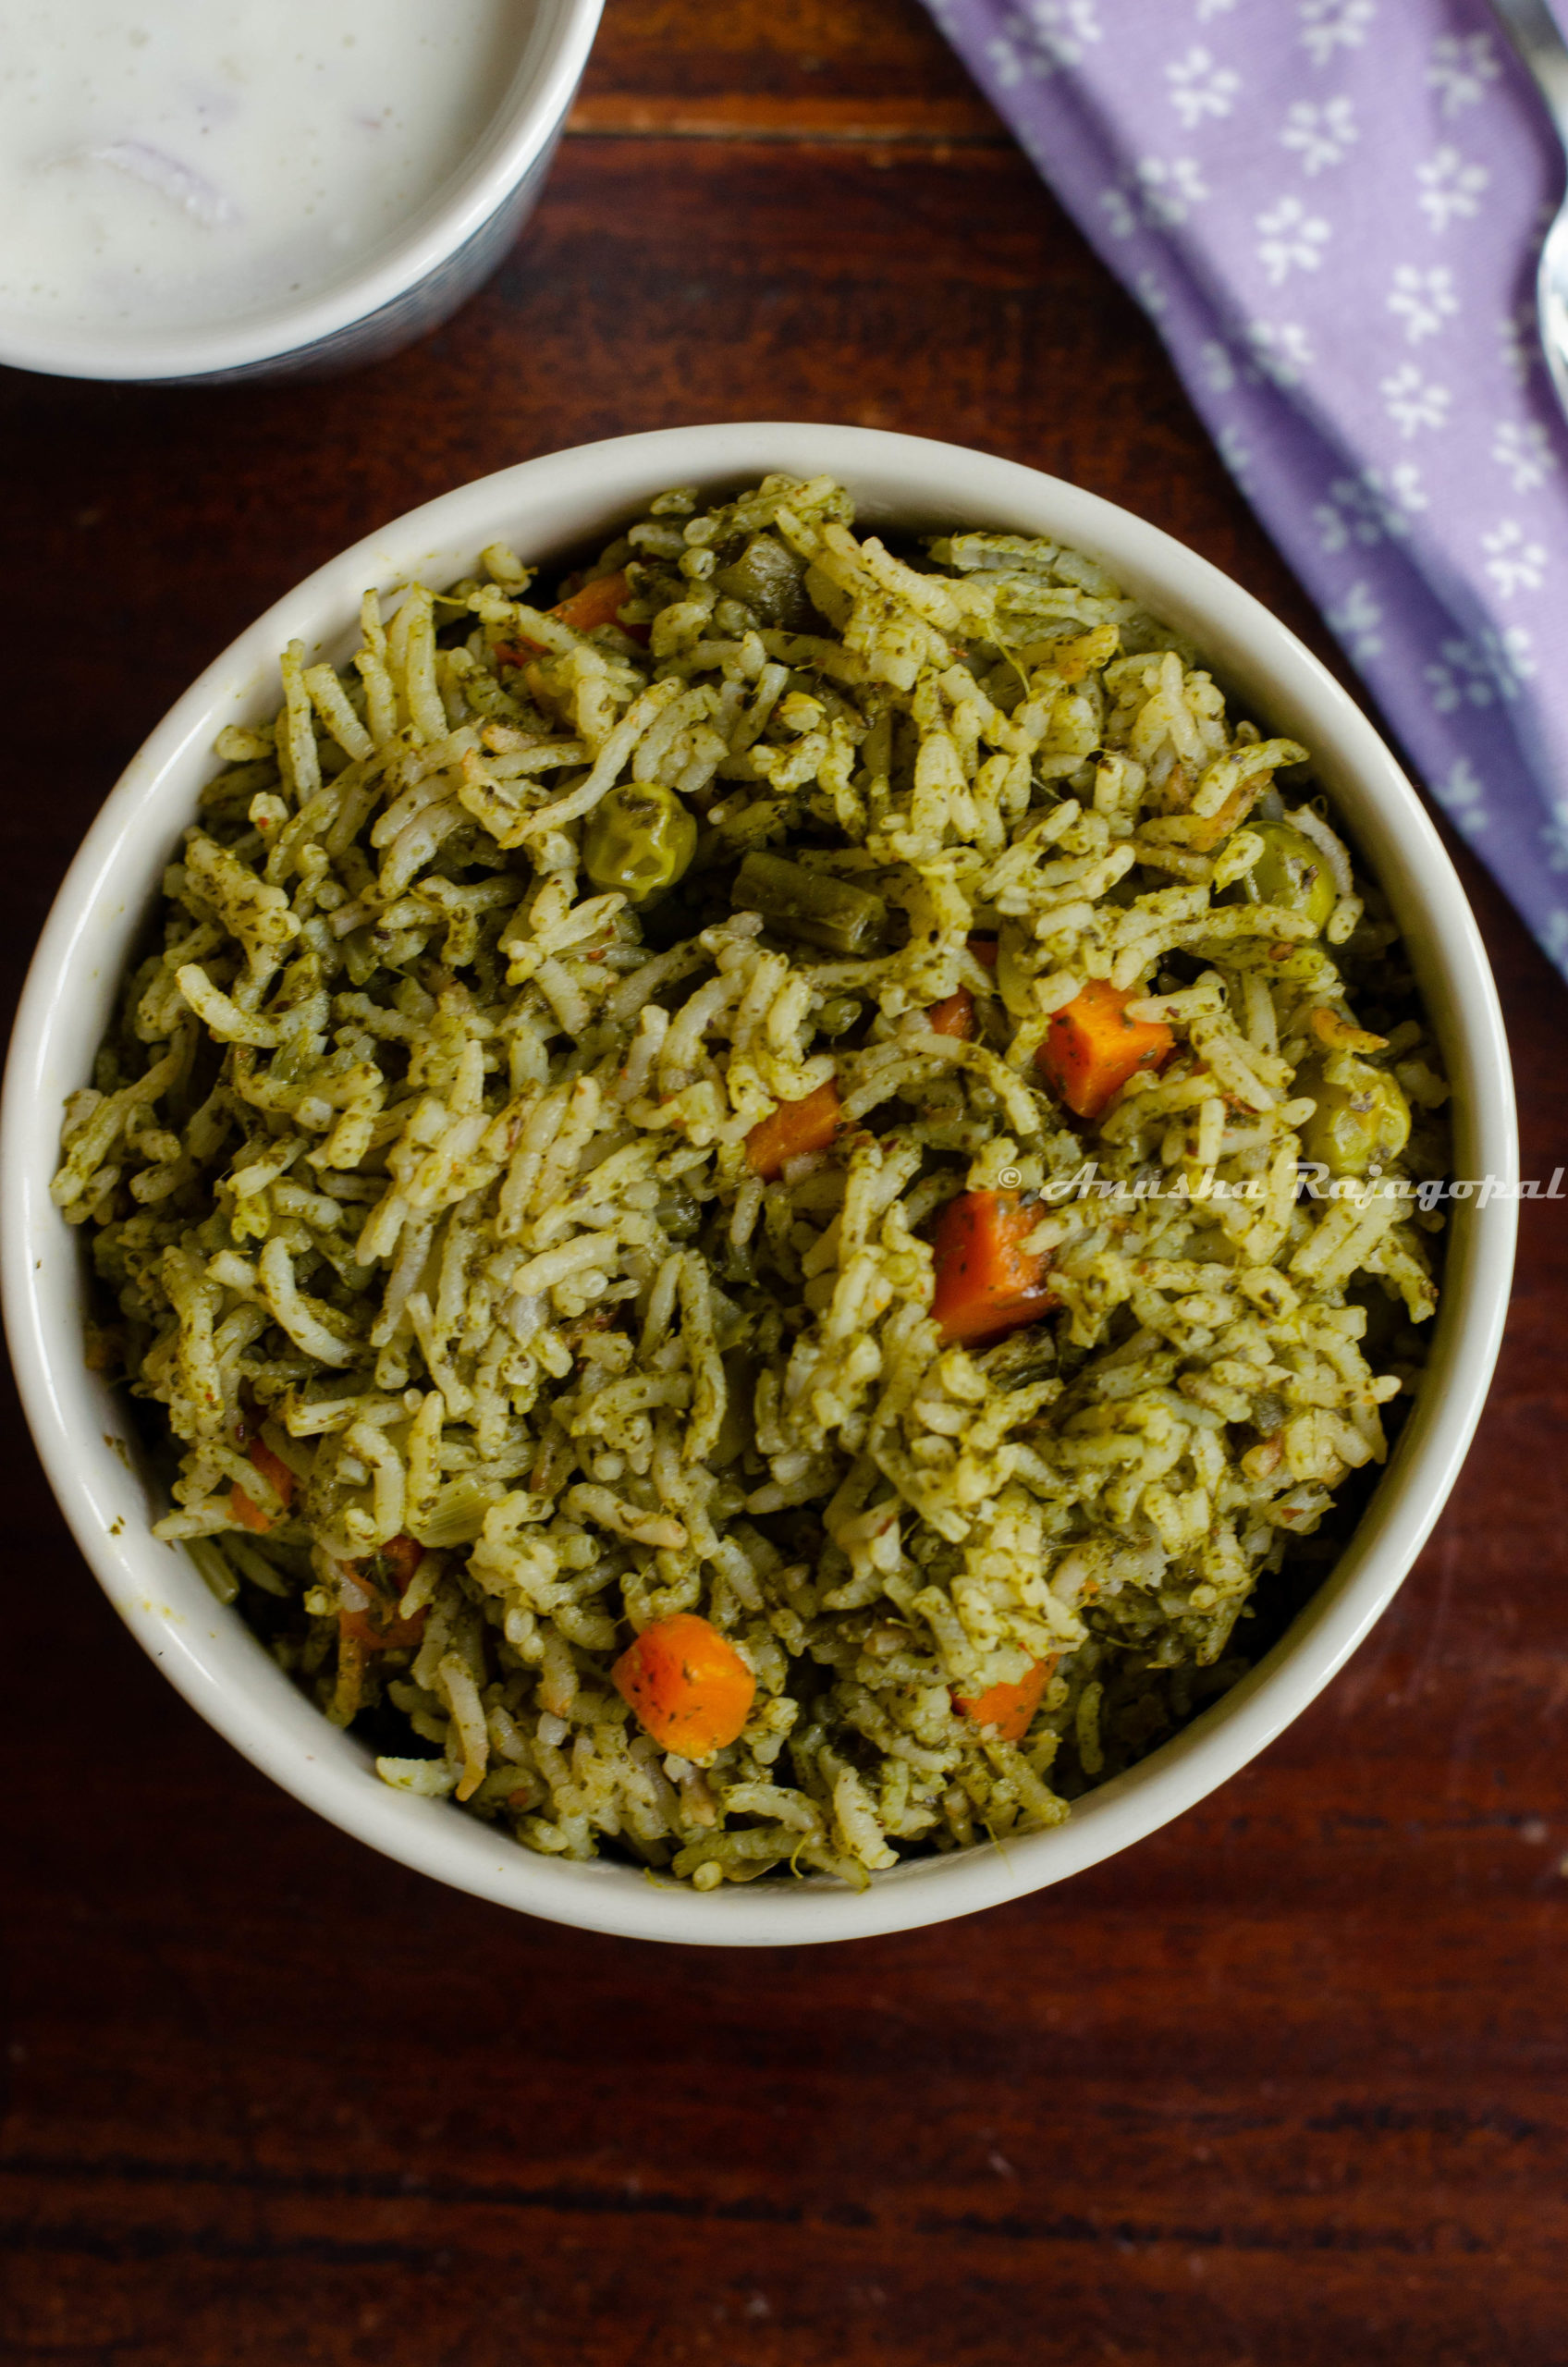 spinach pulao made in the instant pot and served in a blue bowl with raita